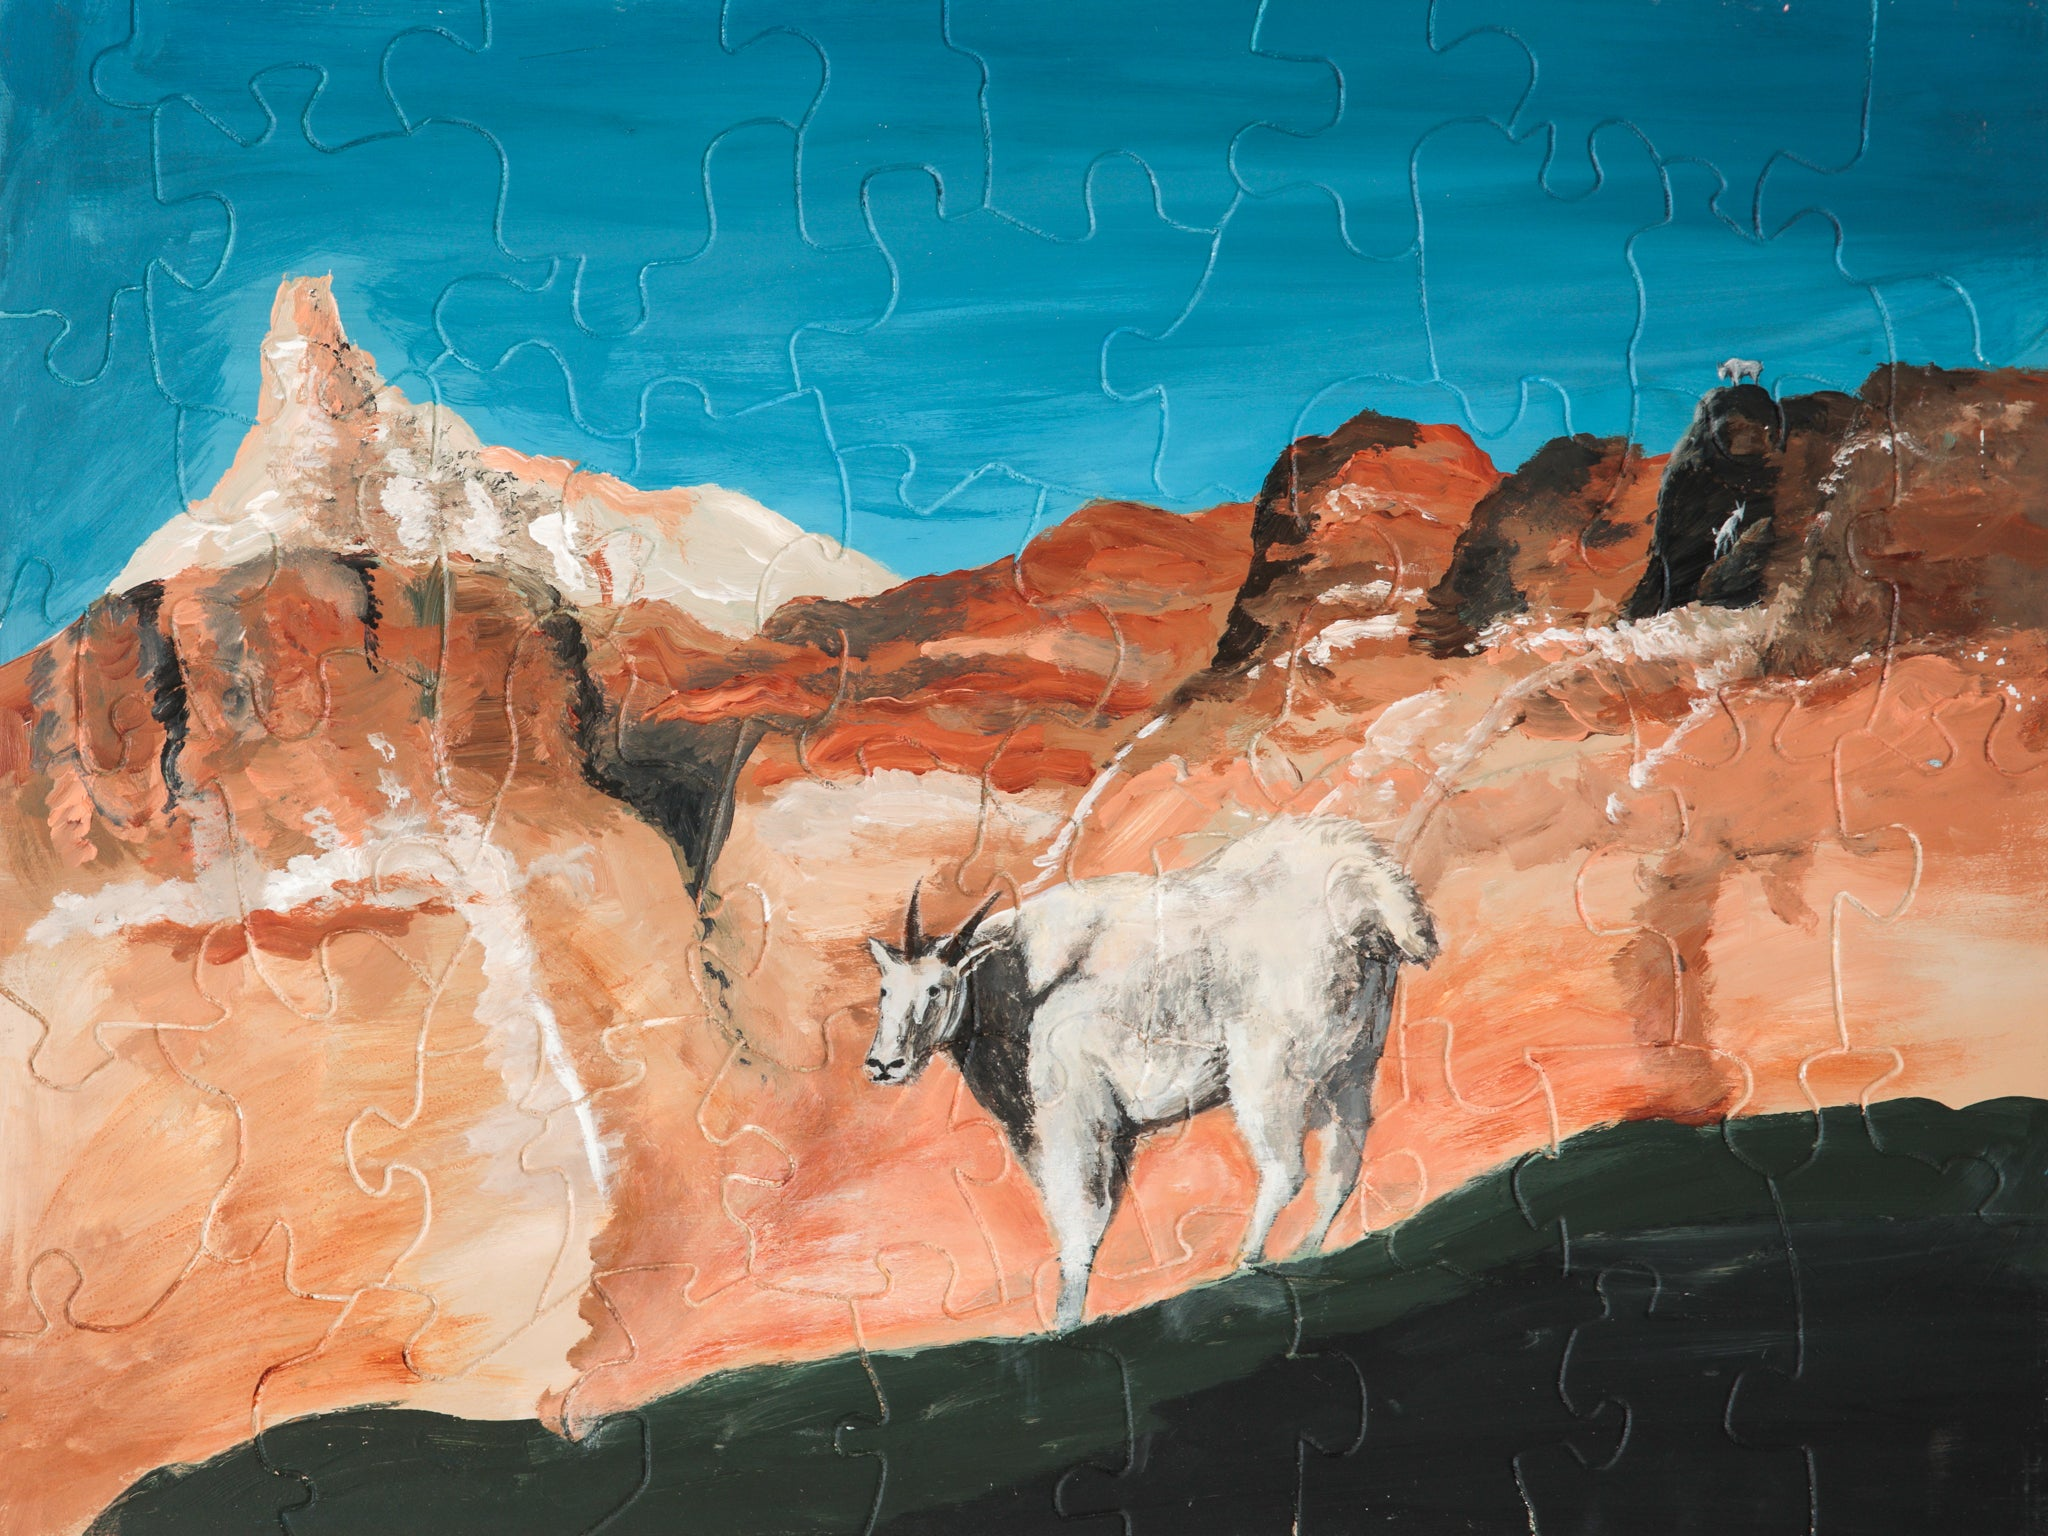 PUZZLE 234 - MOUNTAIN GOAT